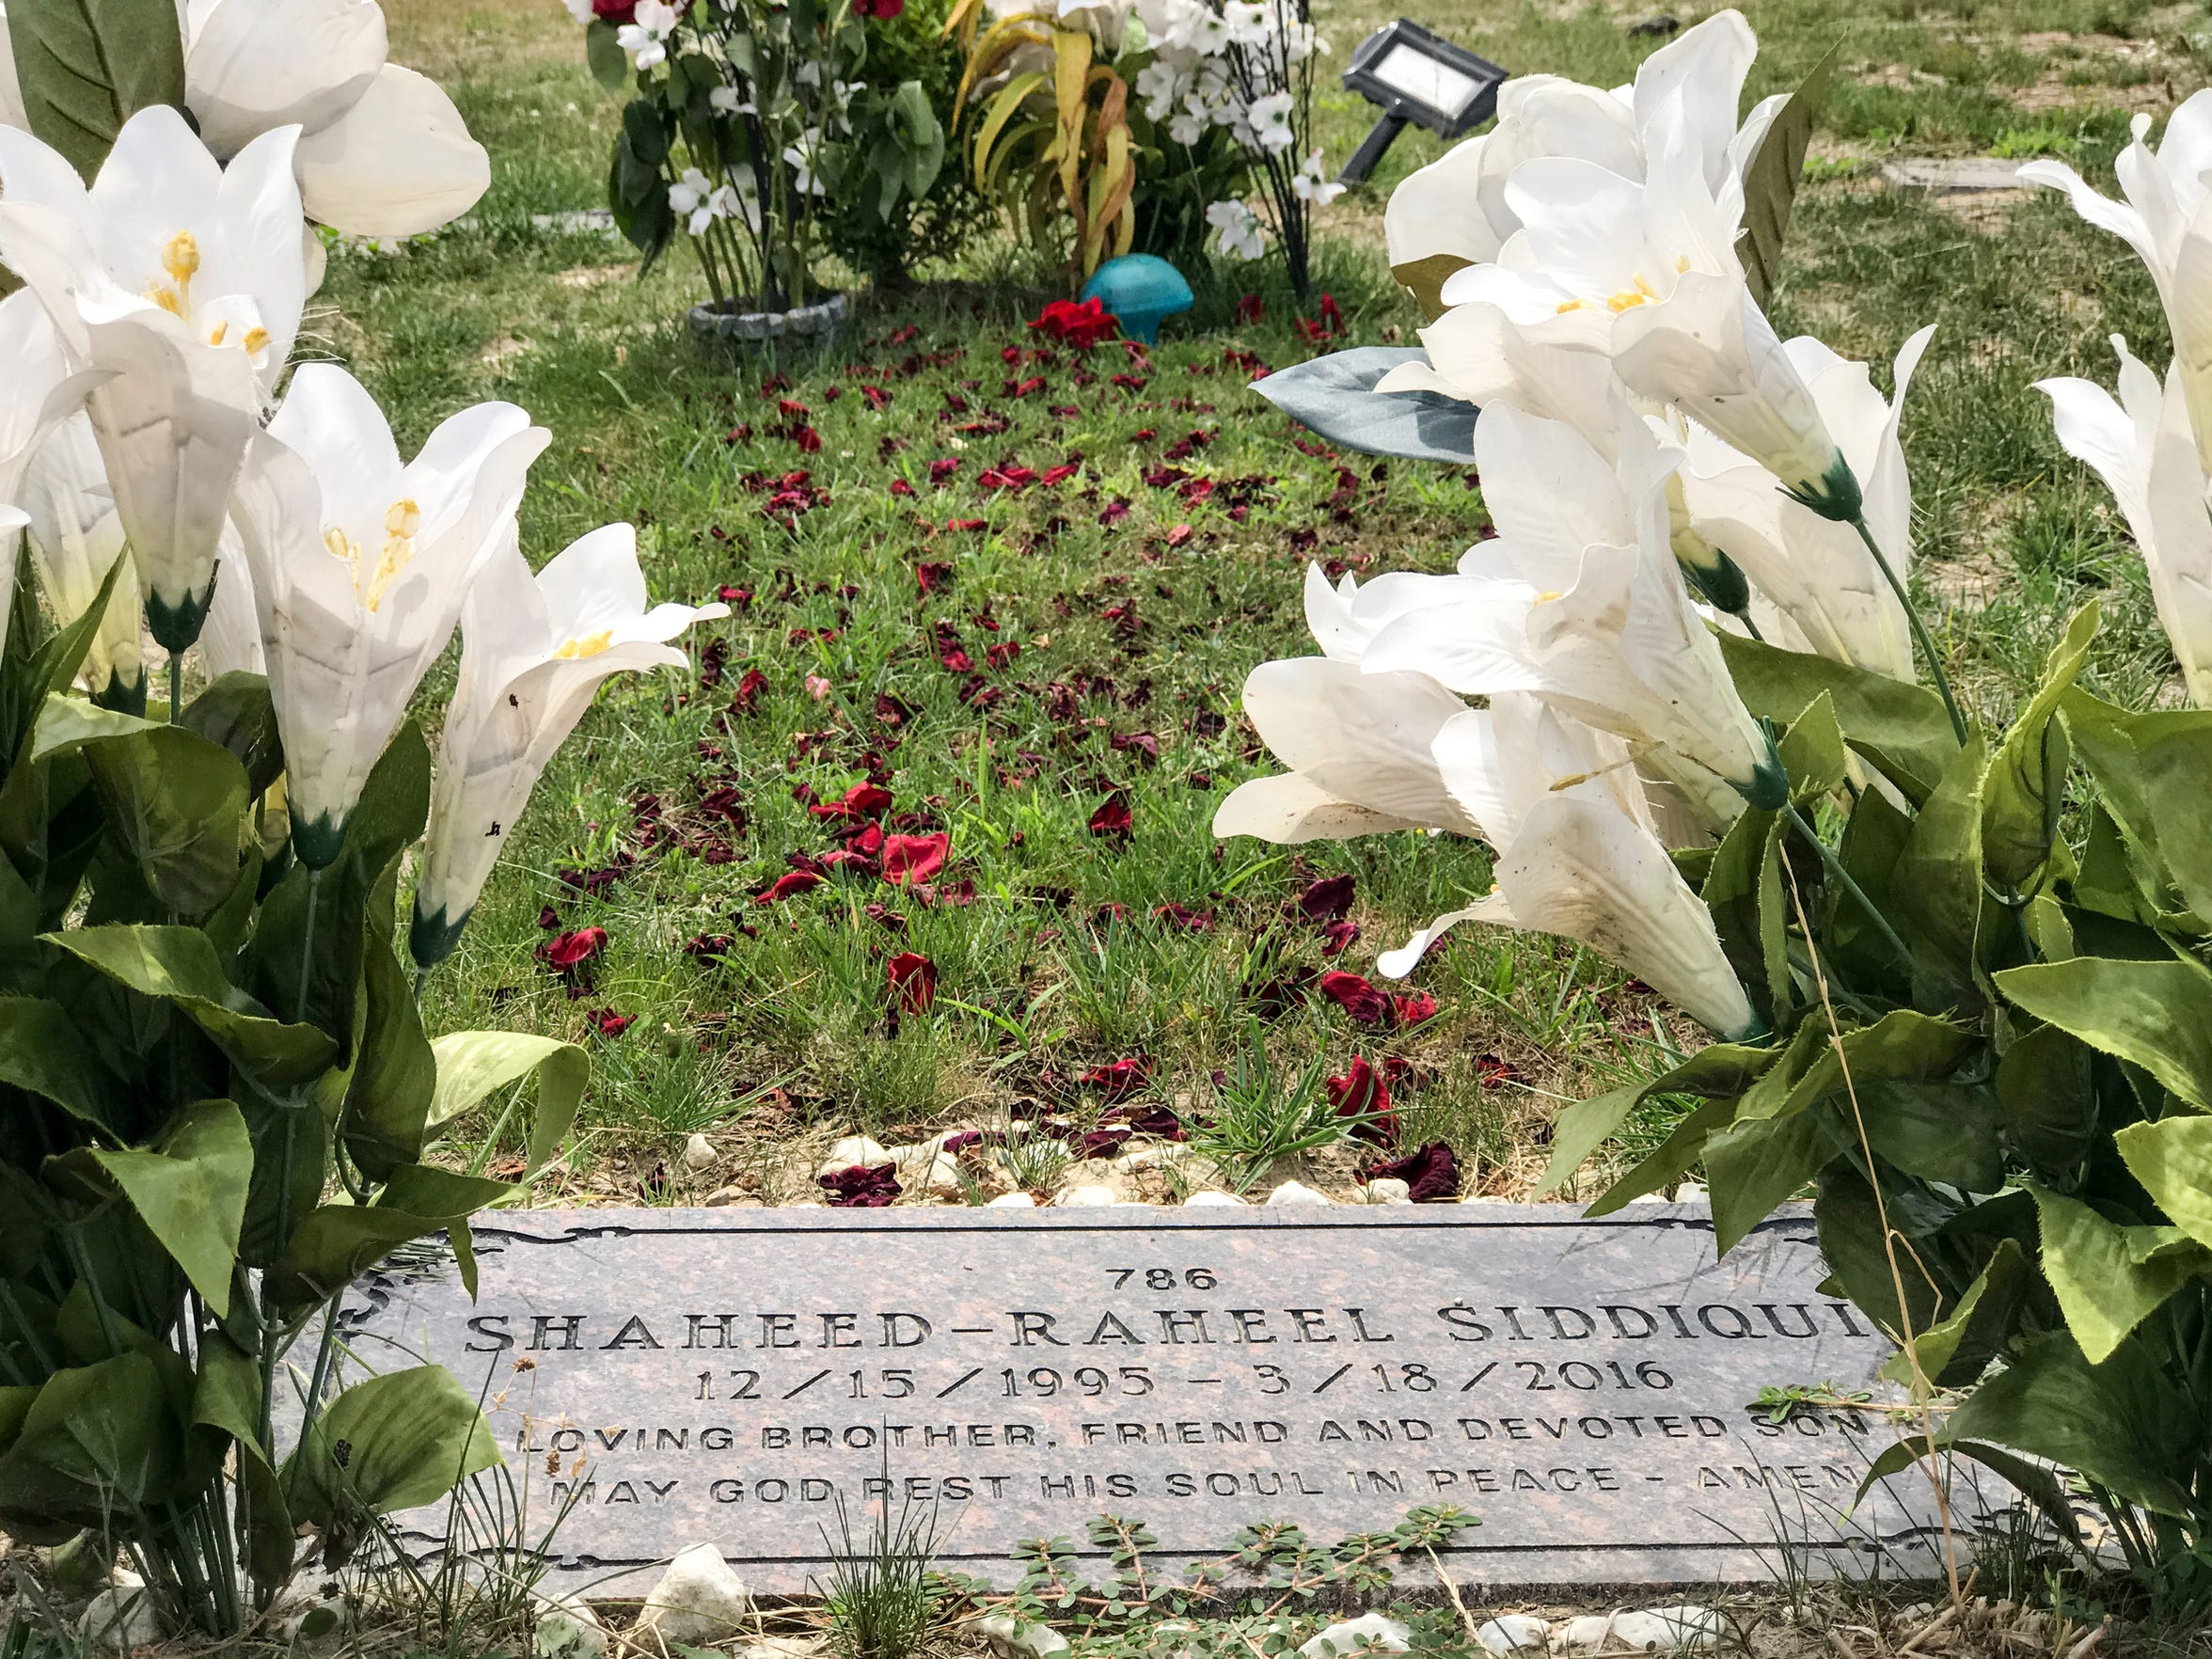 The gravesite of Raheel Siddiqui is seen at Woodmere Cemetary in Detroit.  Siddiqui died during Marine training at Parris Island in March of 2016.